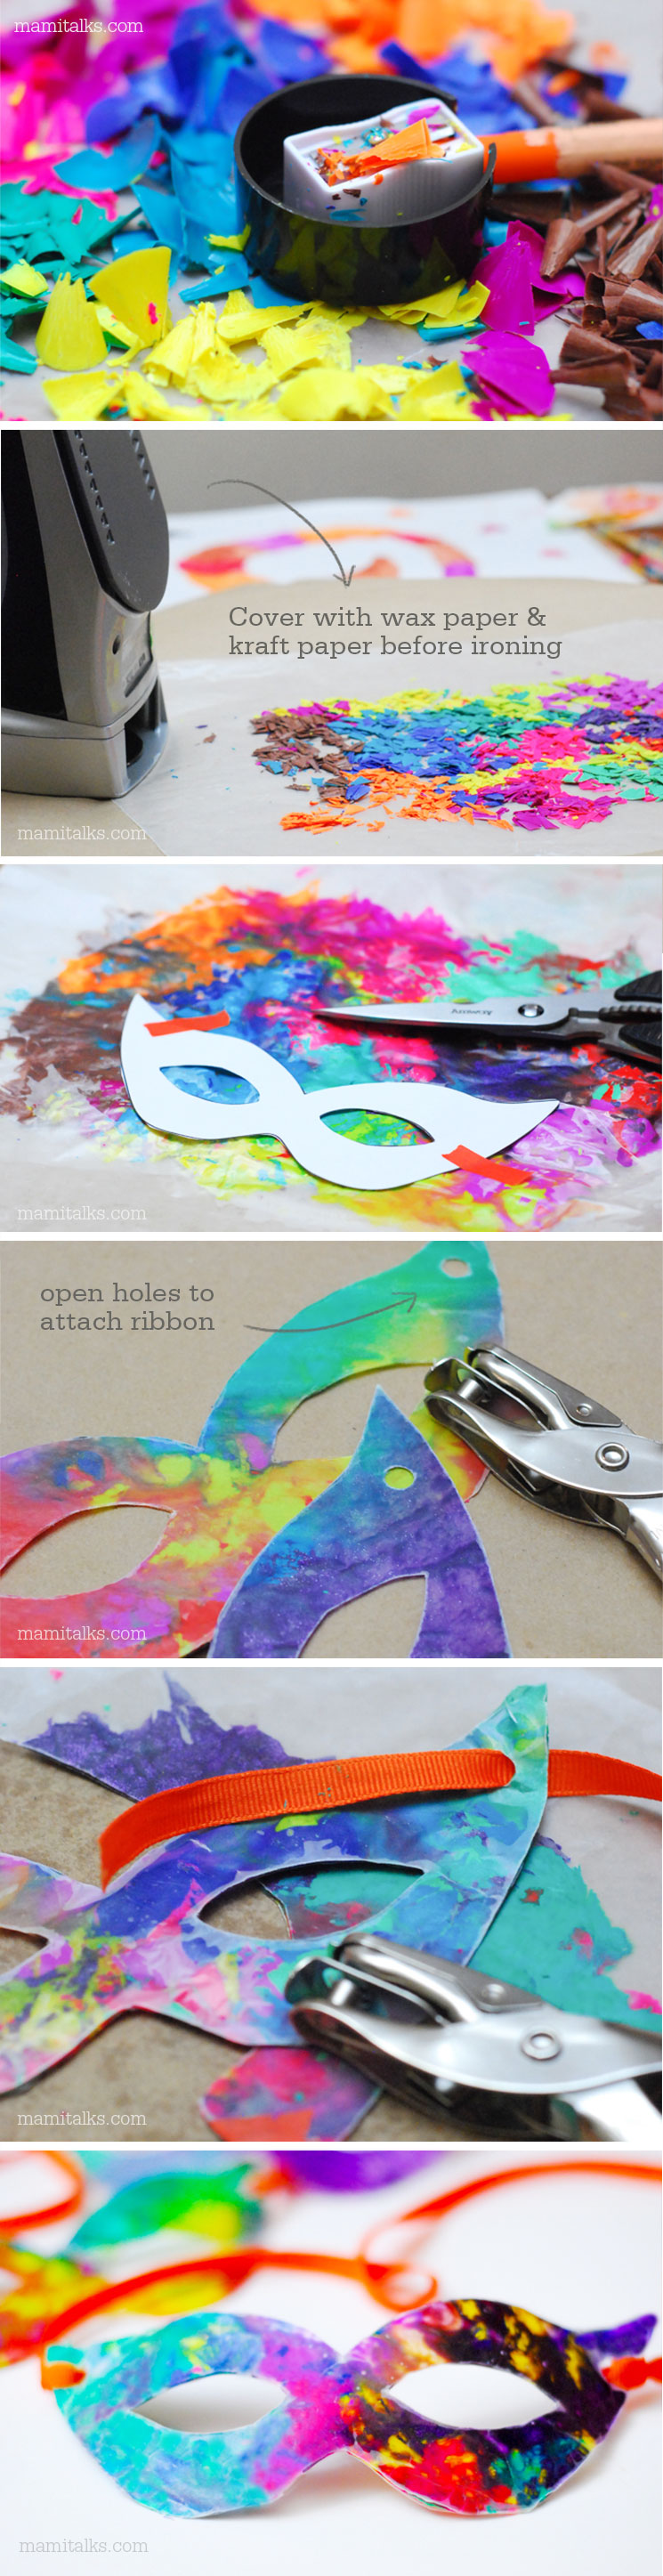 DIY Carnaval Crafts Ideas: Crayon Masks -MamiTalks.com